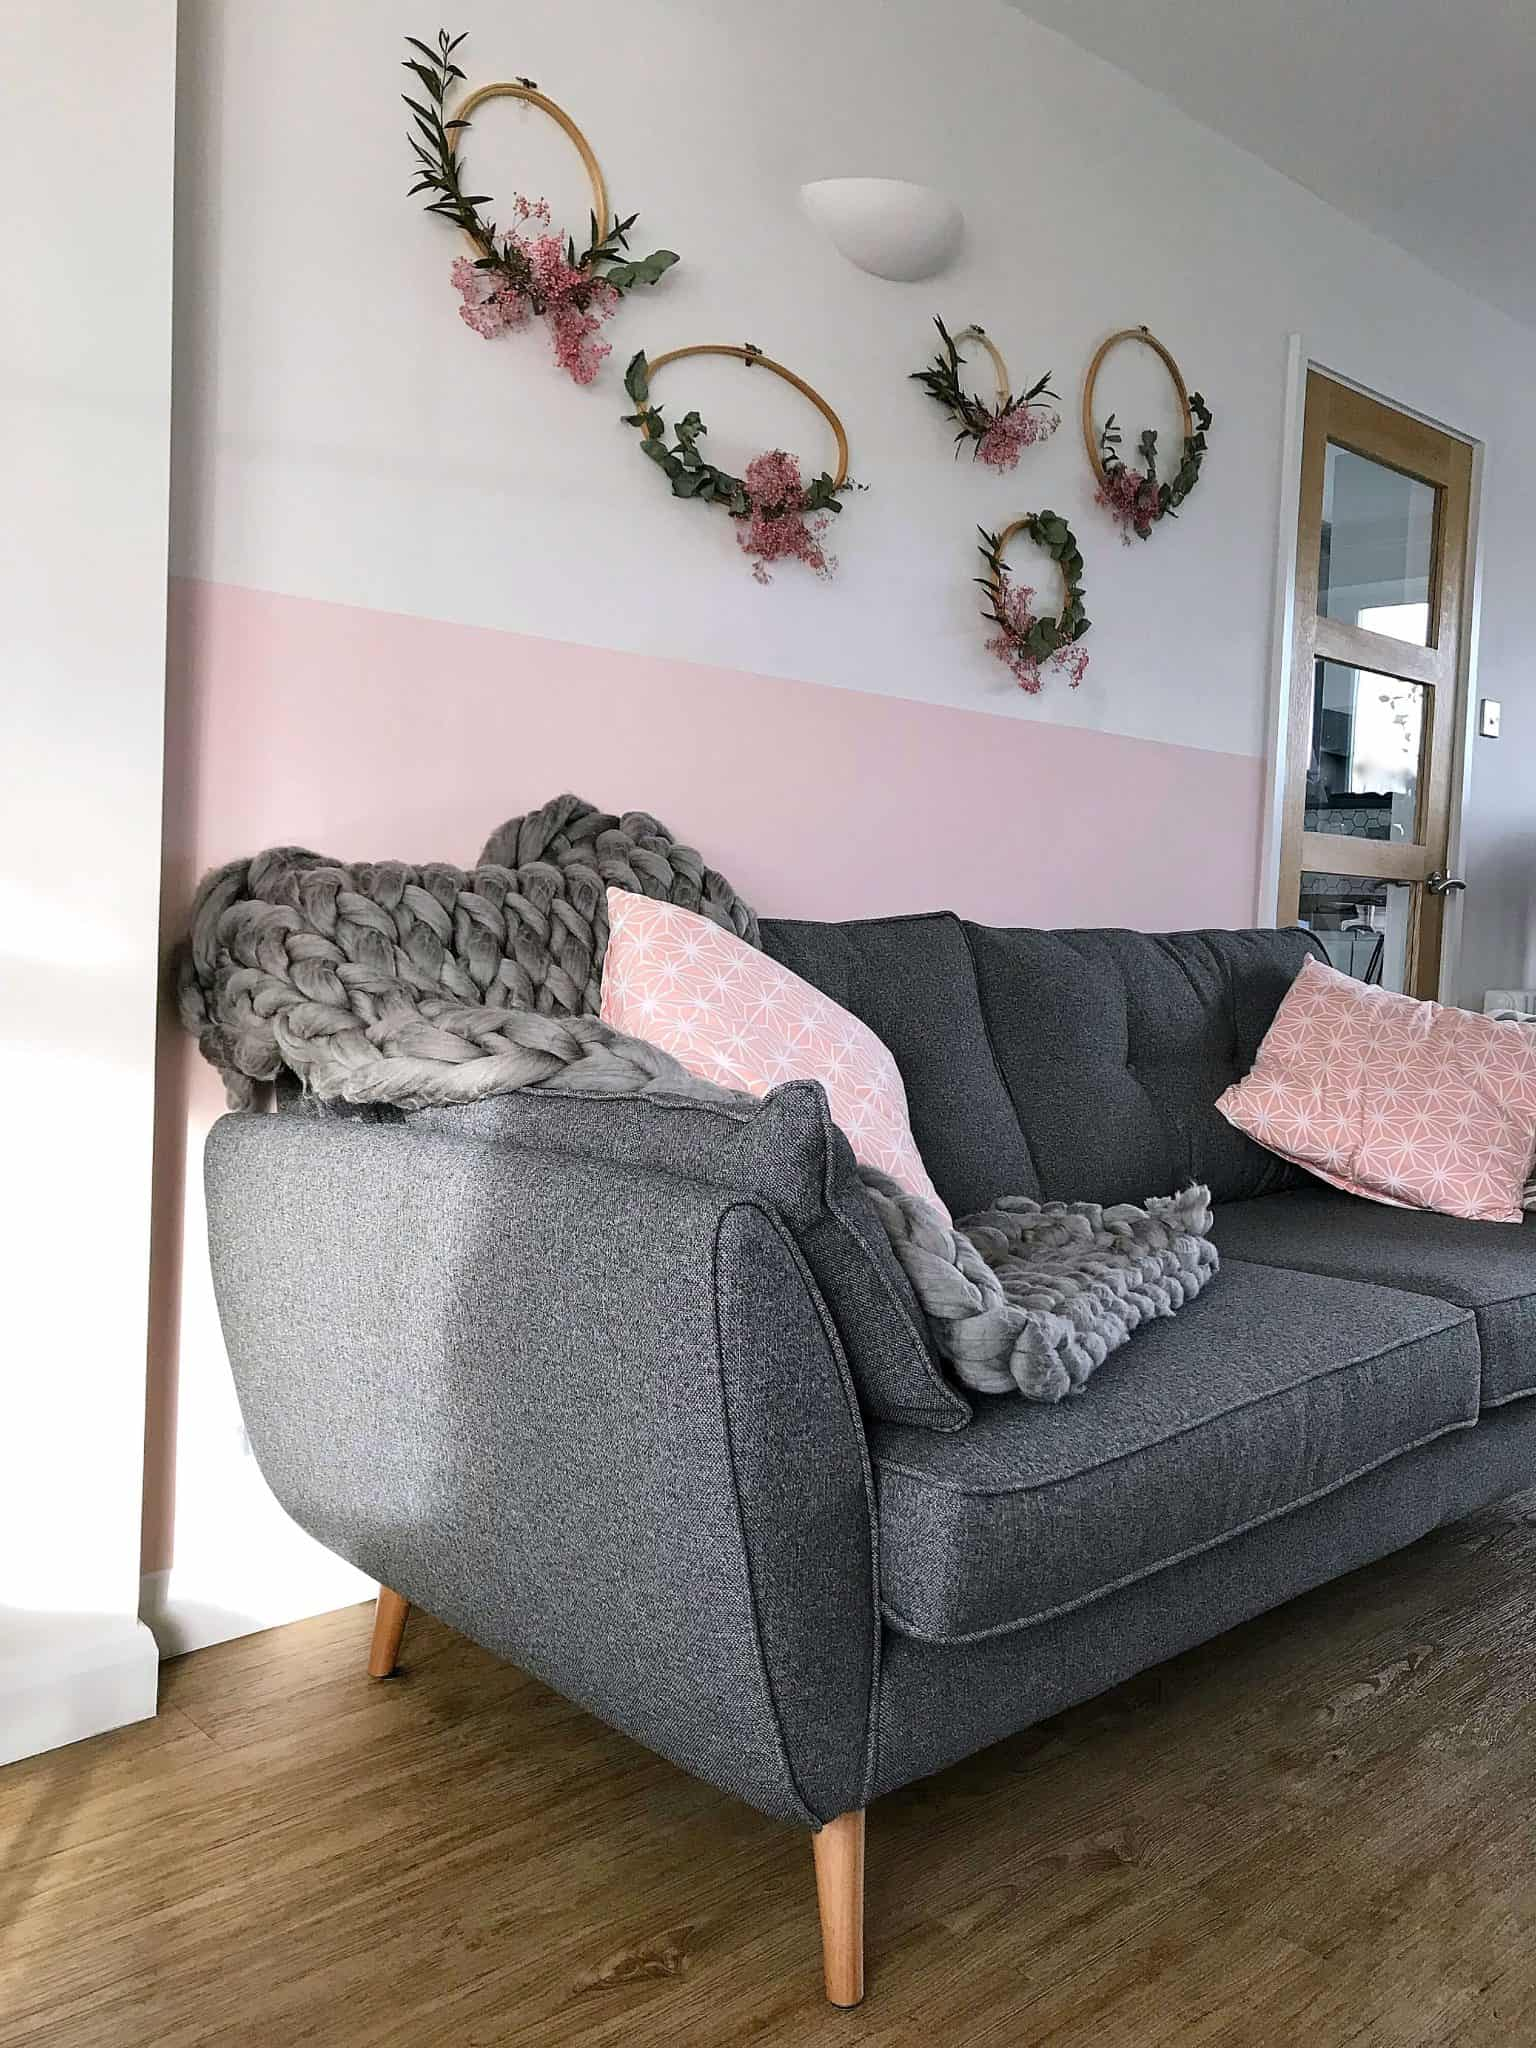 Charcoal Zinc DFS sofa with pink wall and cushions